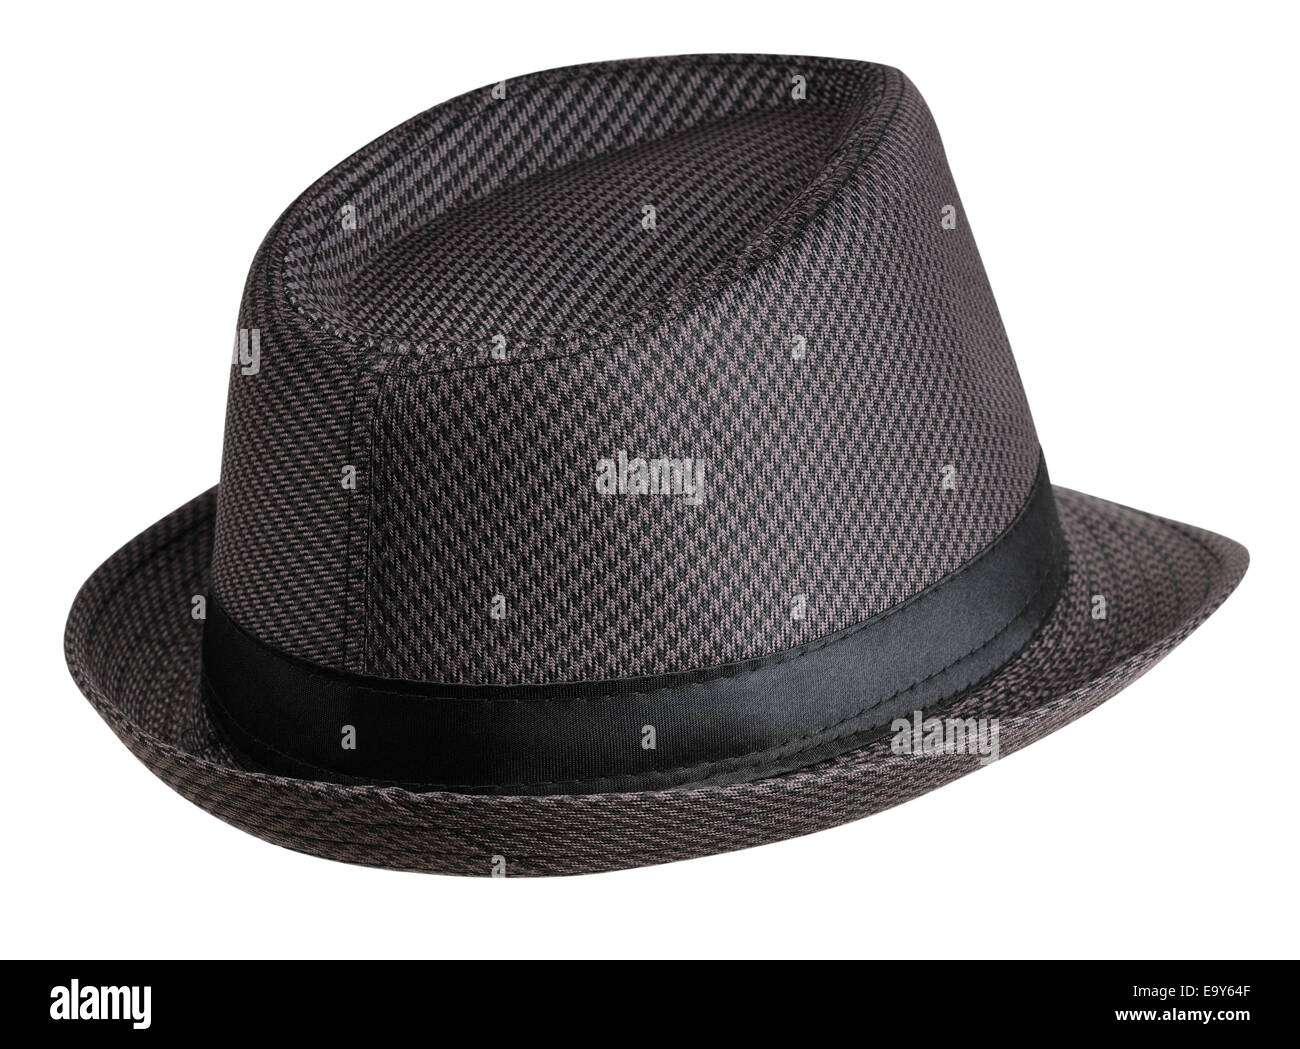 Hat - rear view on the right. Isolated on white background - Stock Image